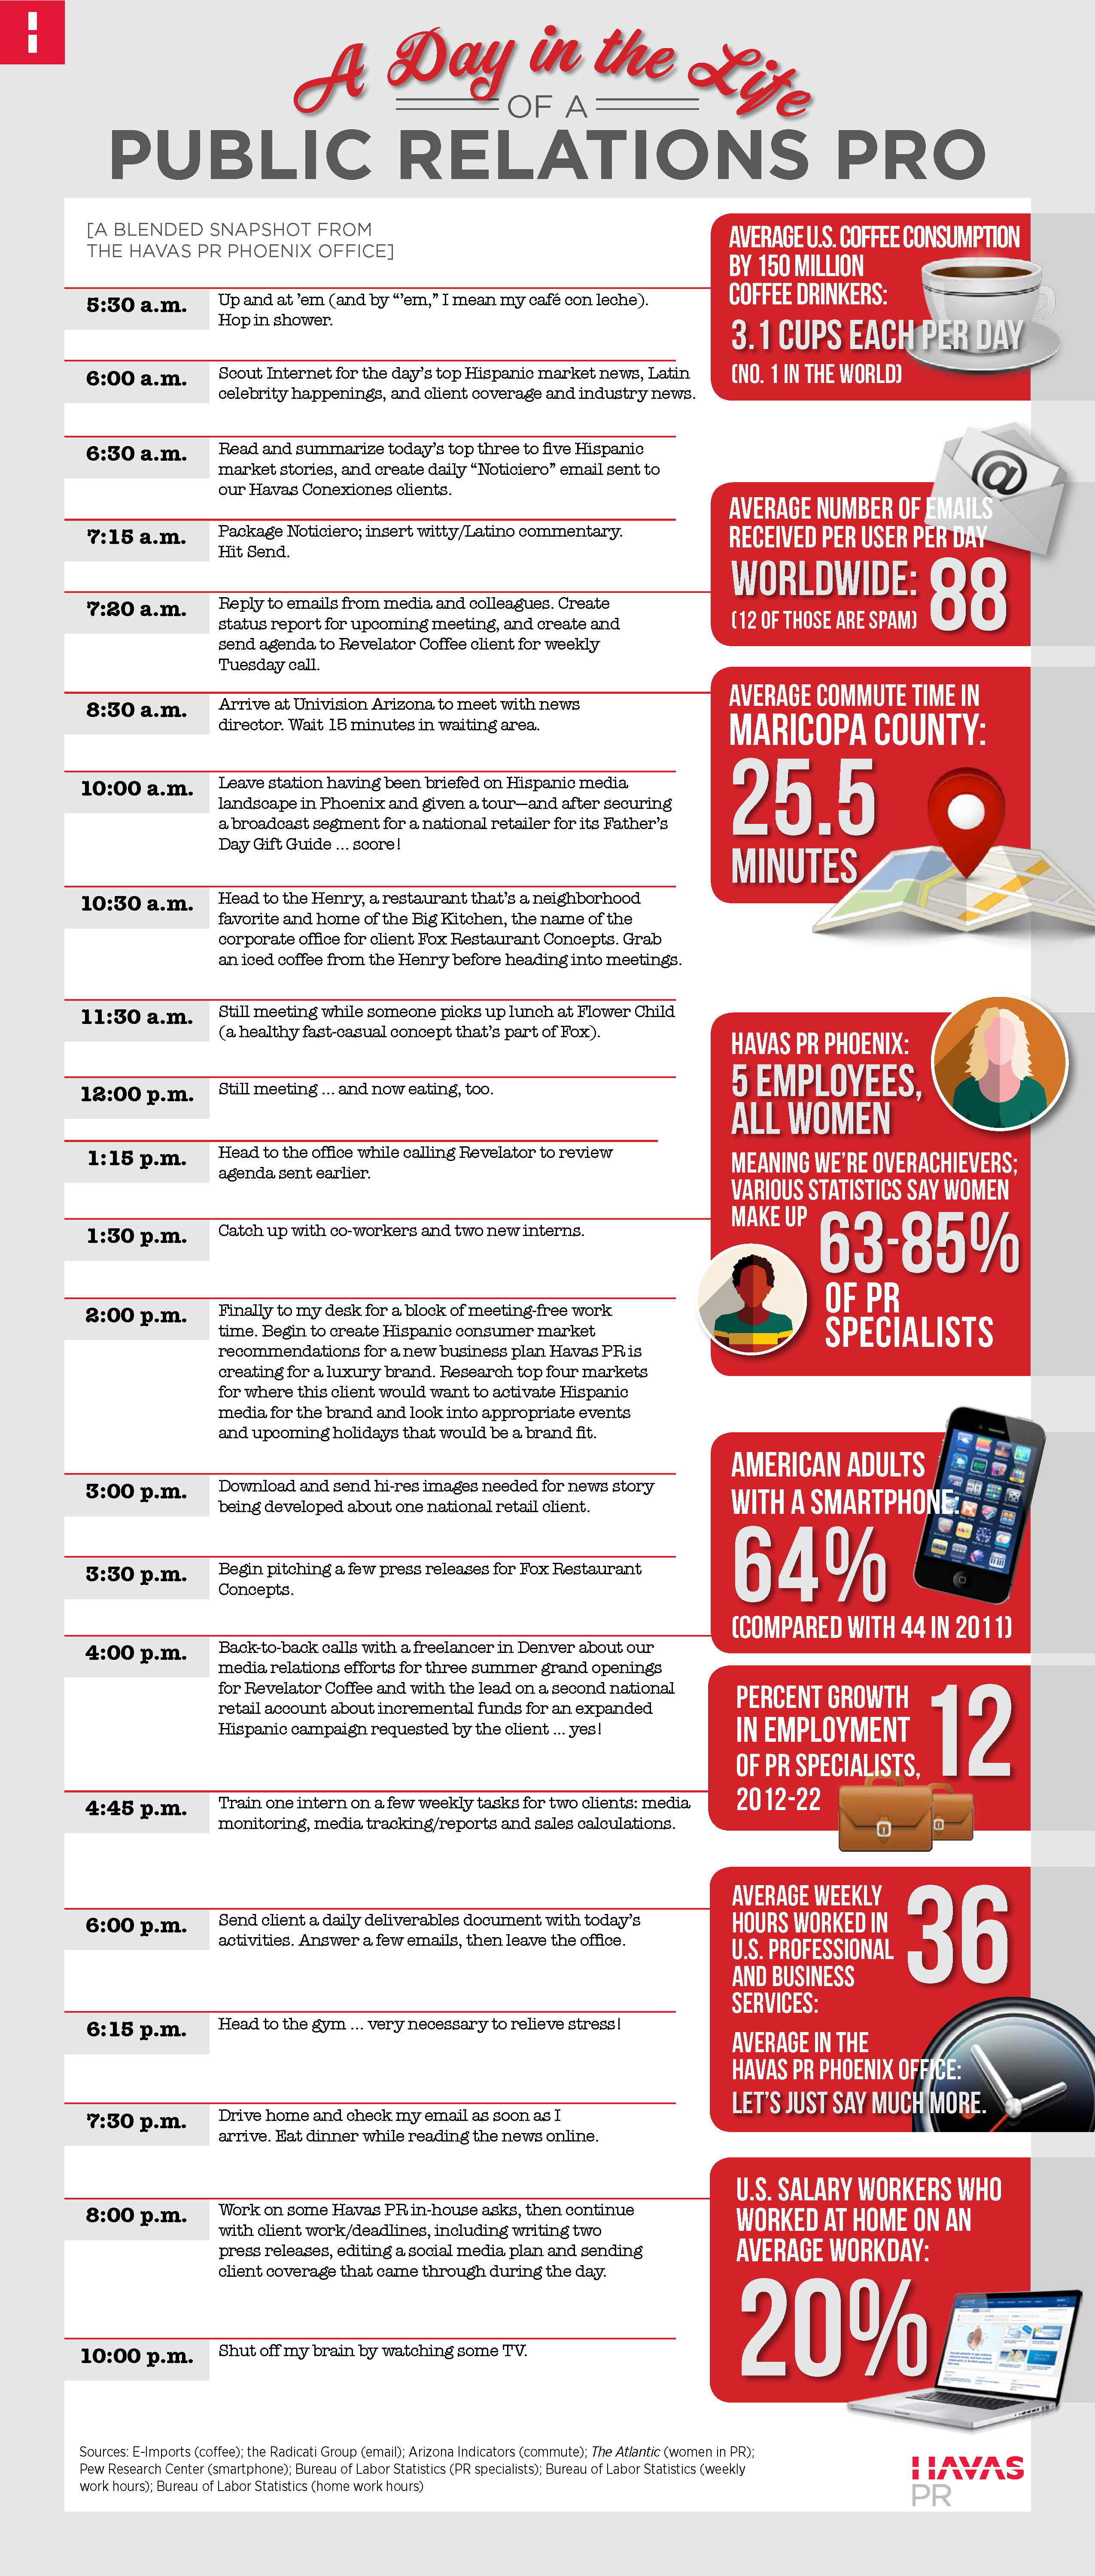 Havas PR Day in the Life infographic